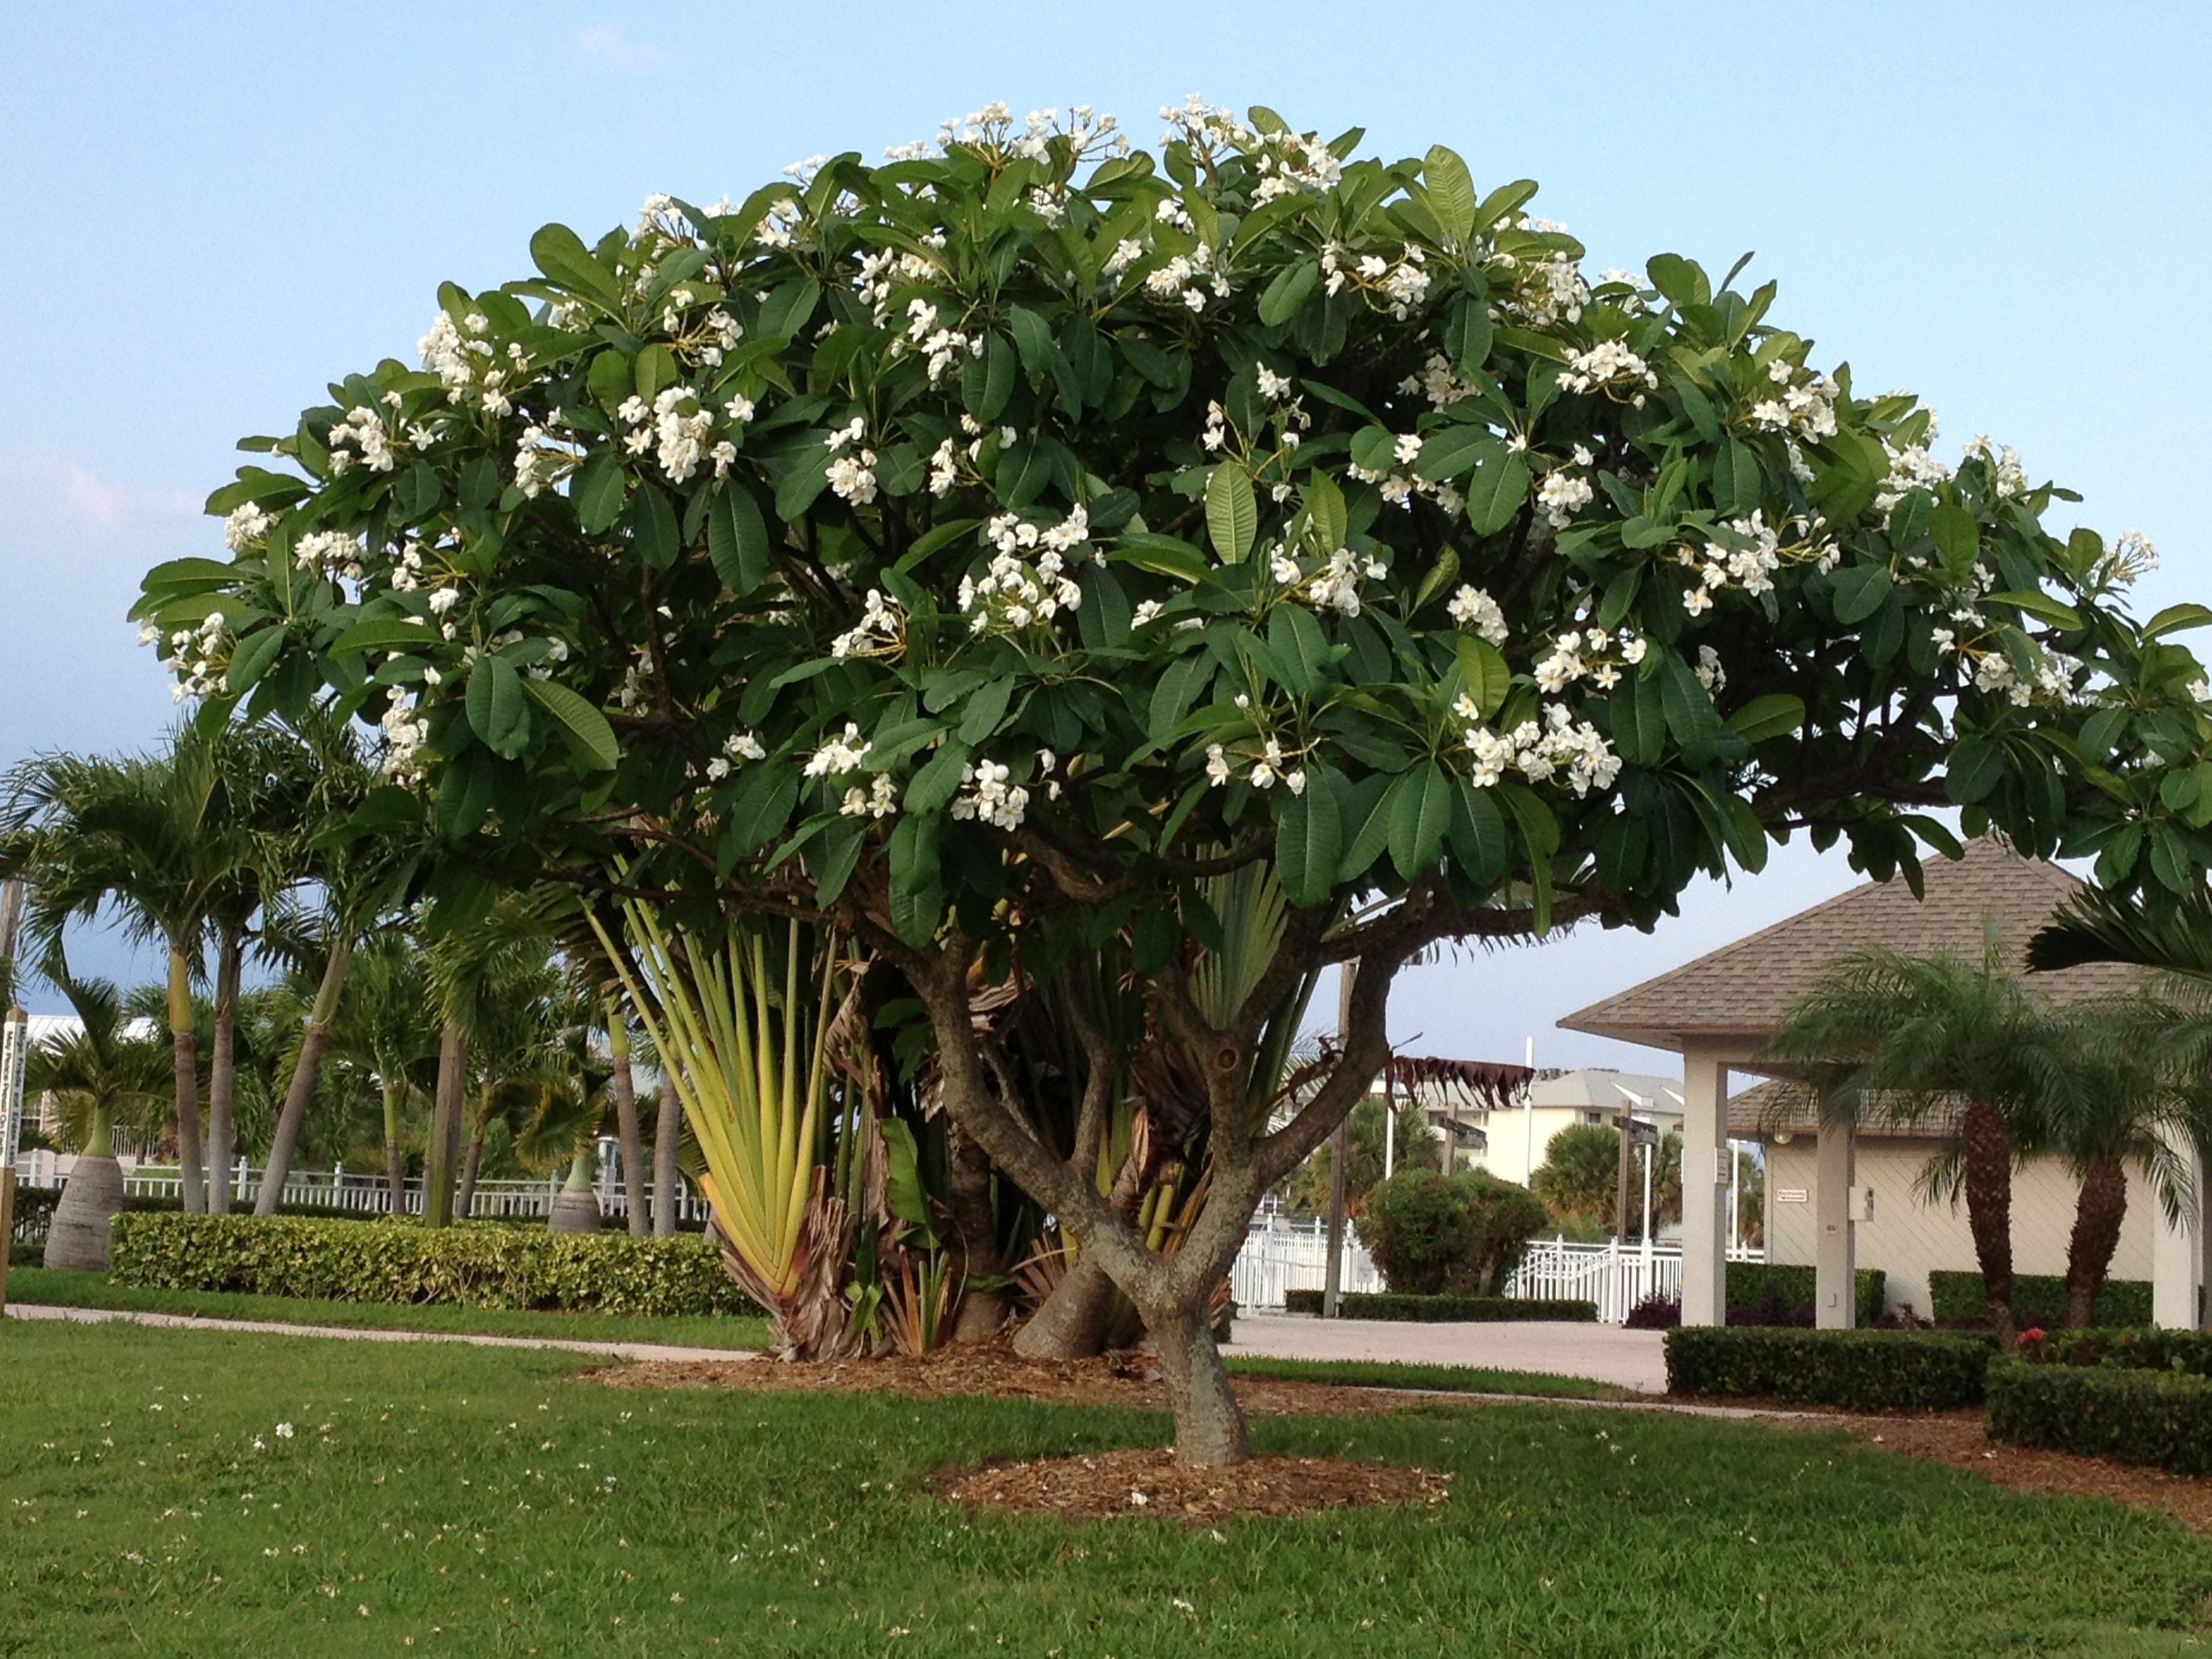 This Is A Photo I Took Of A White Plumeria Frangipani Tree Jardineria Jardines Plantas